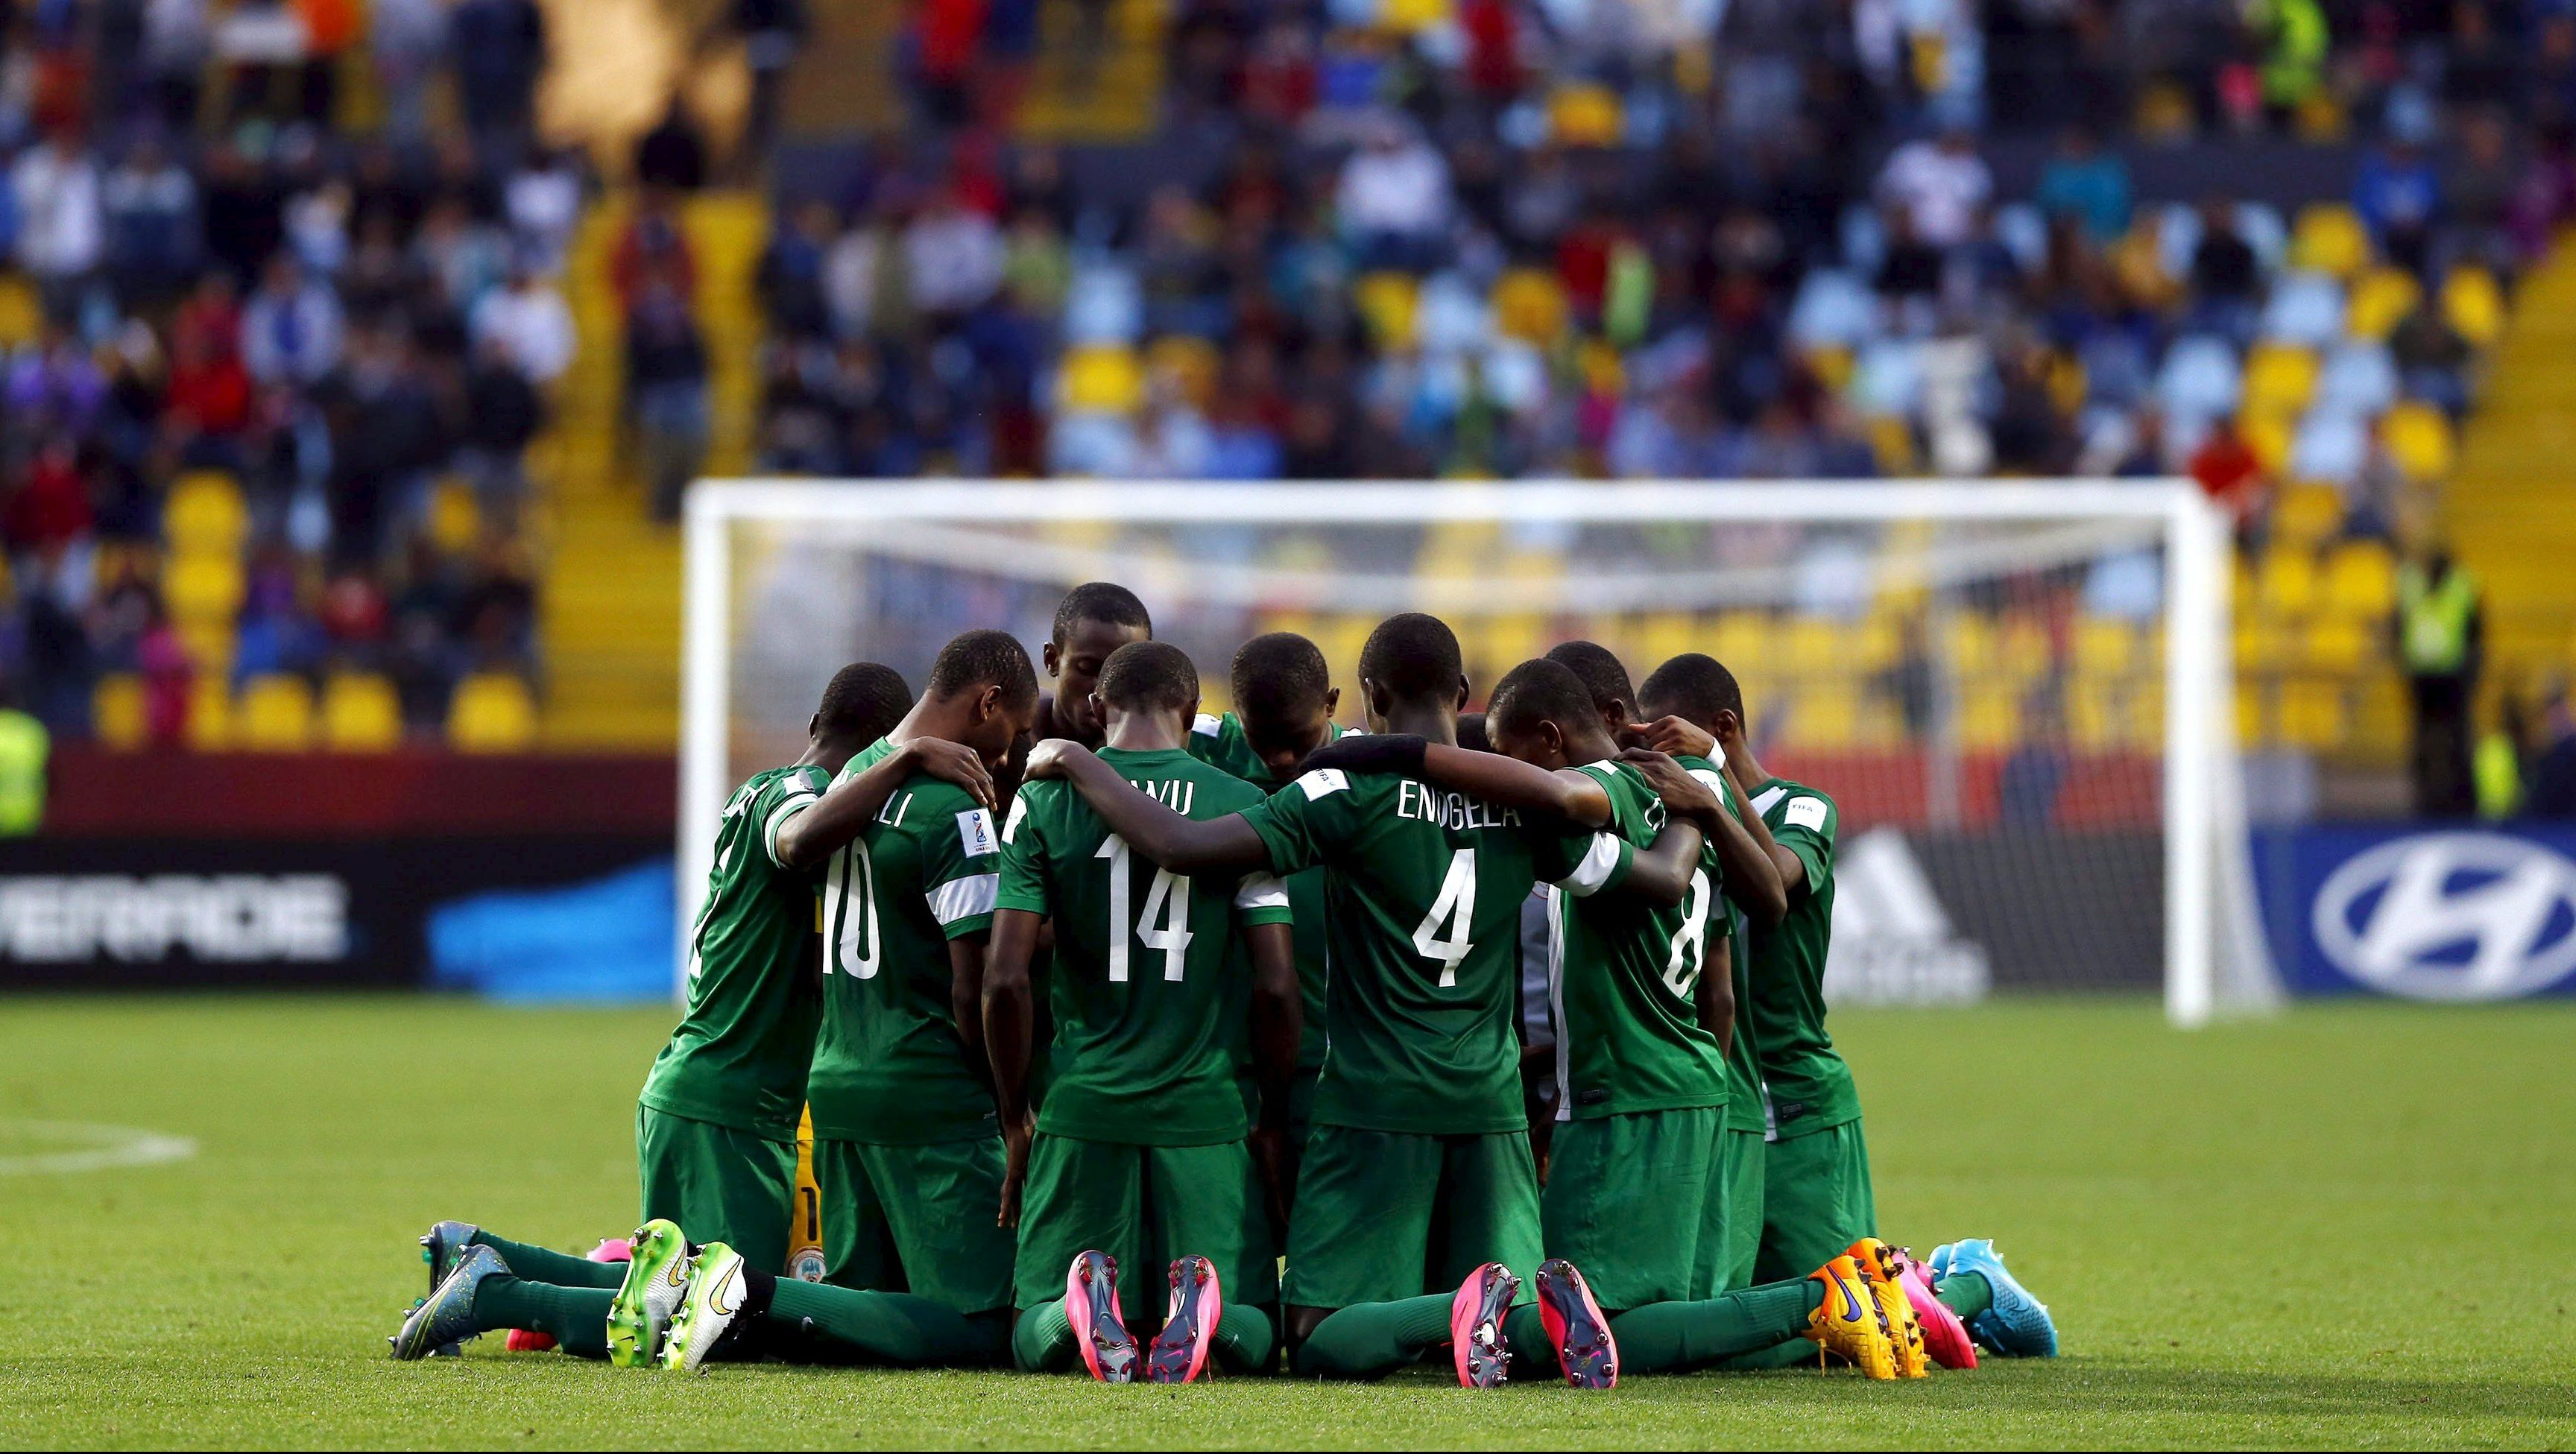 Nigeria's soccer team players pray before starting the second half of their final match against Mali at the U17 World Cup in Vina del Mar city